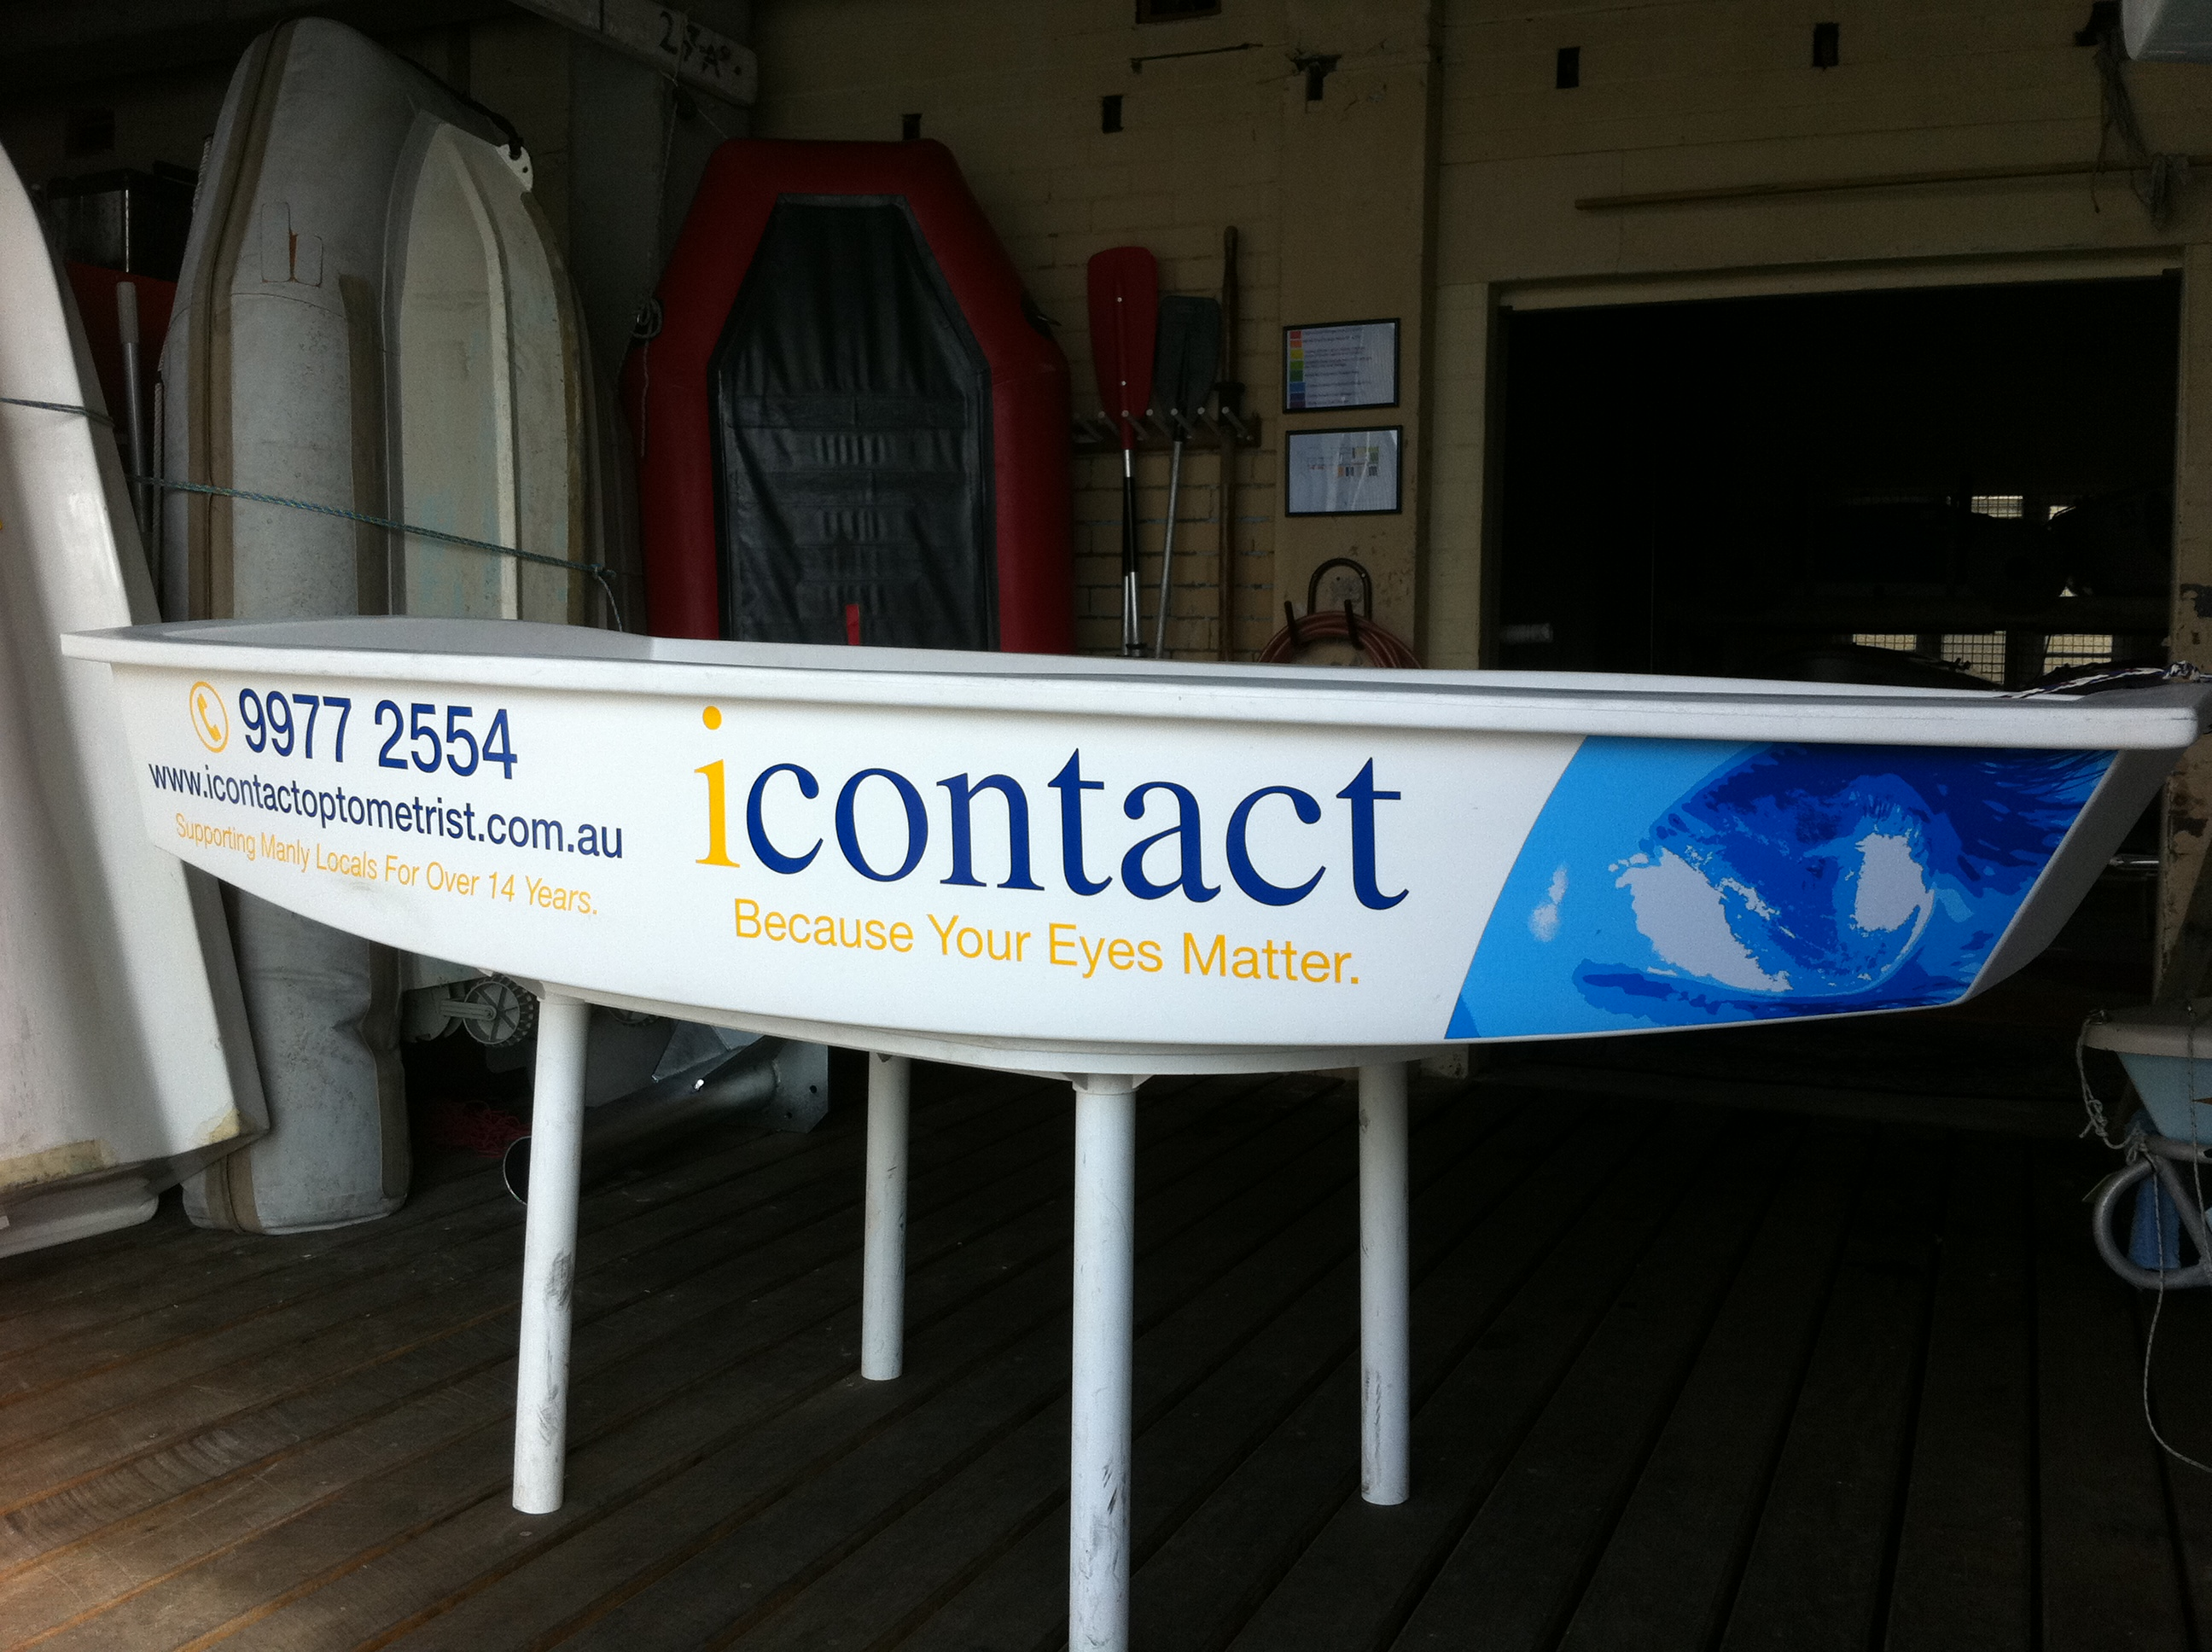 Jmac Graphics, Signage, Outdoor, Wrapping Boat, i Contact